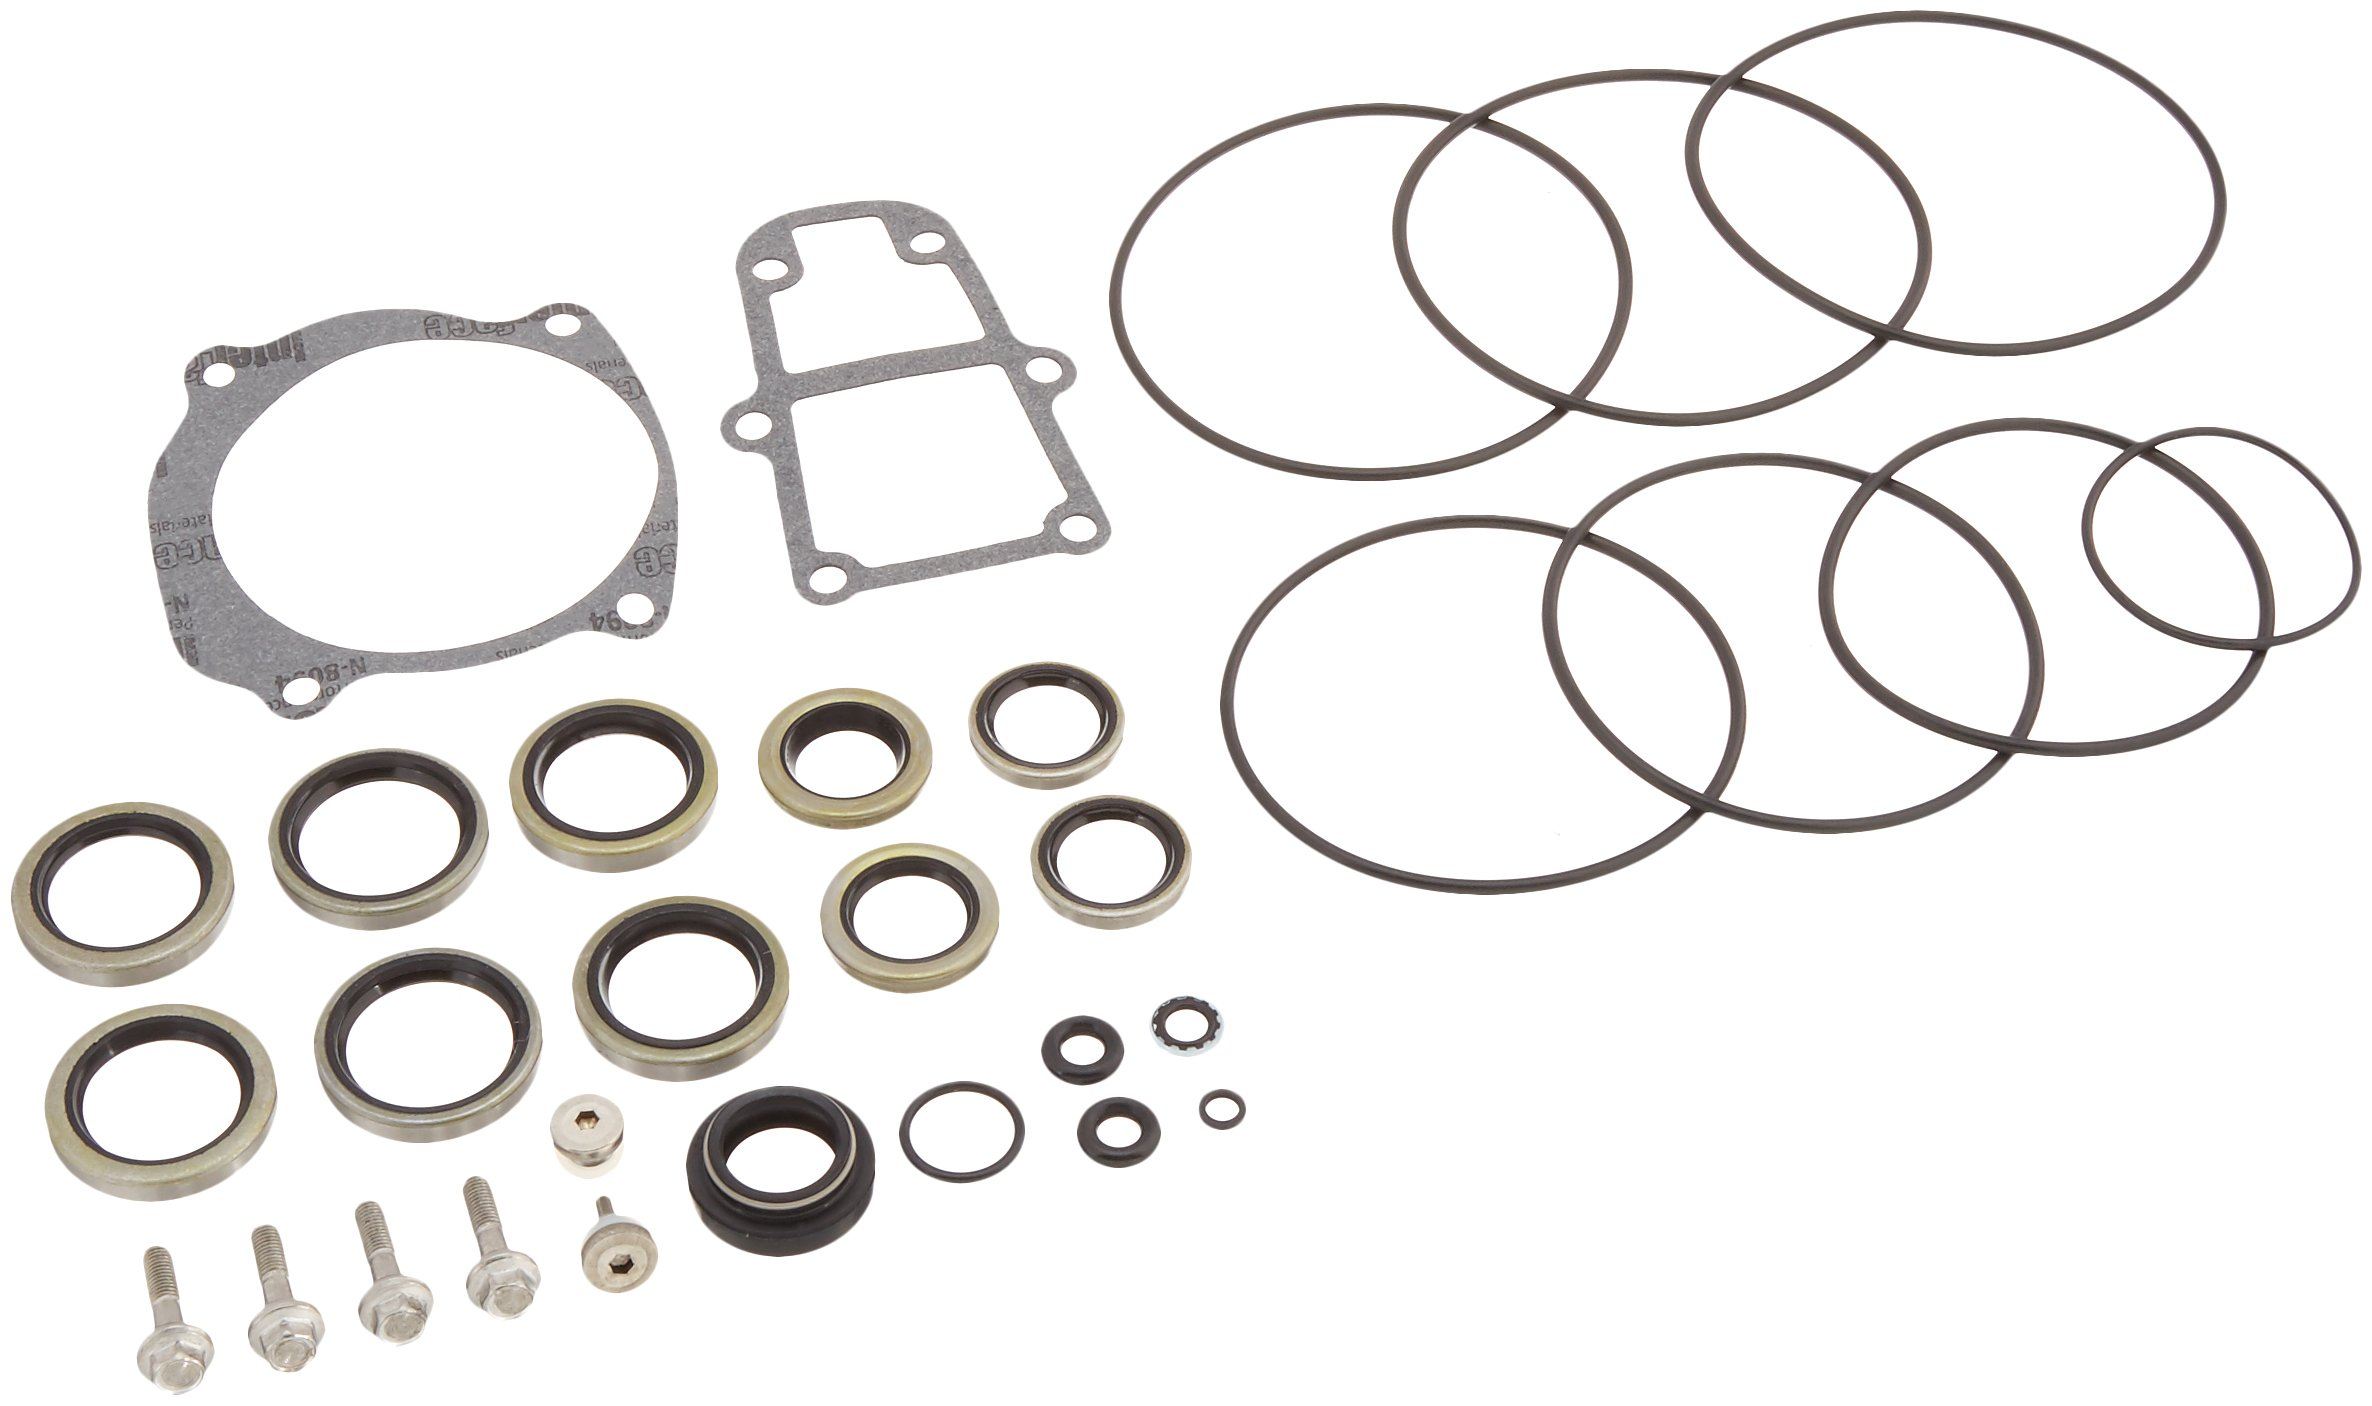 Sierra 18-8384 Seal Kit by Sierra International